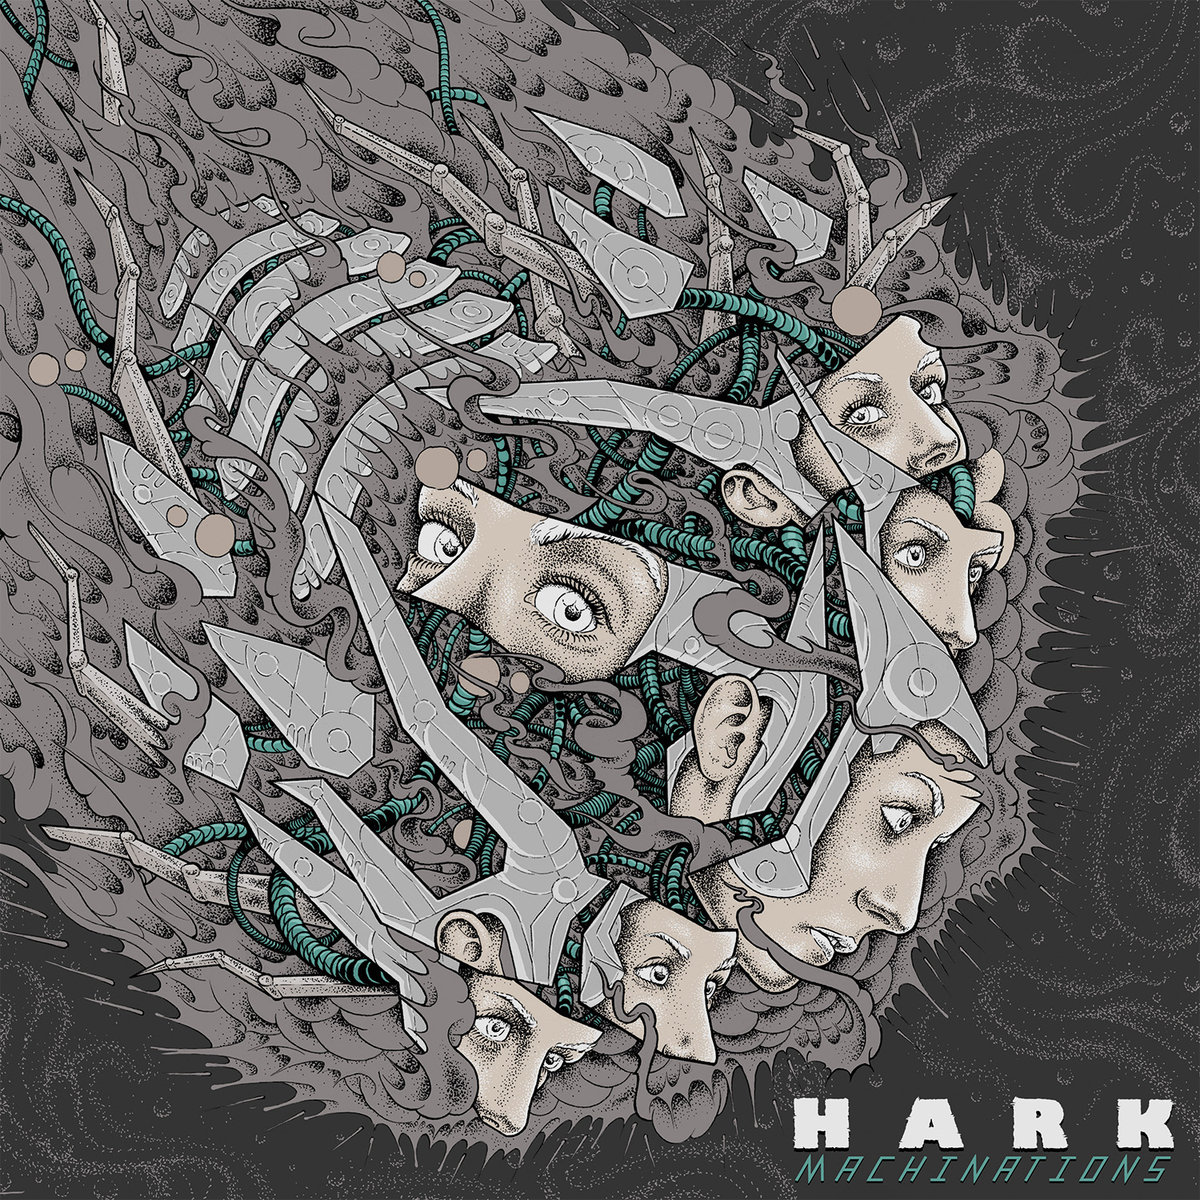 HARK Machinations - Vinyl LP (black)